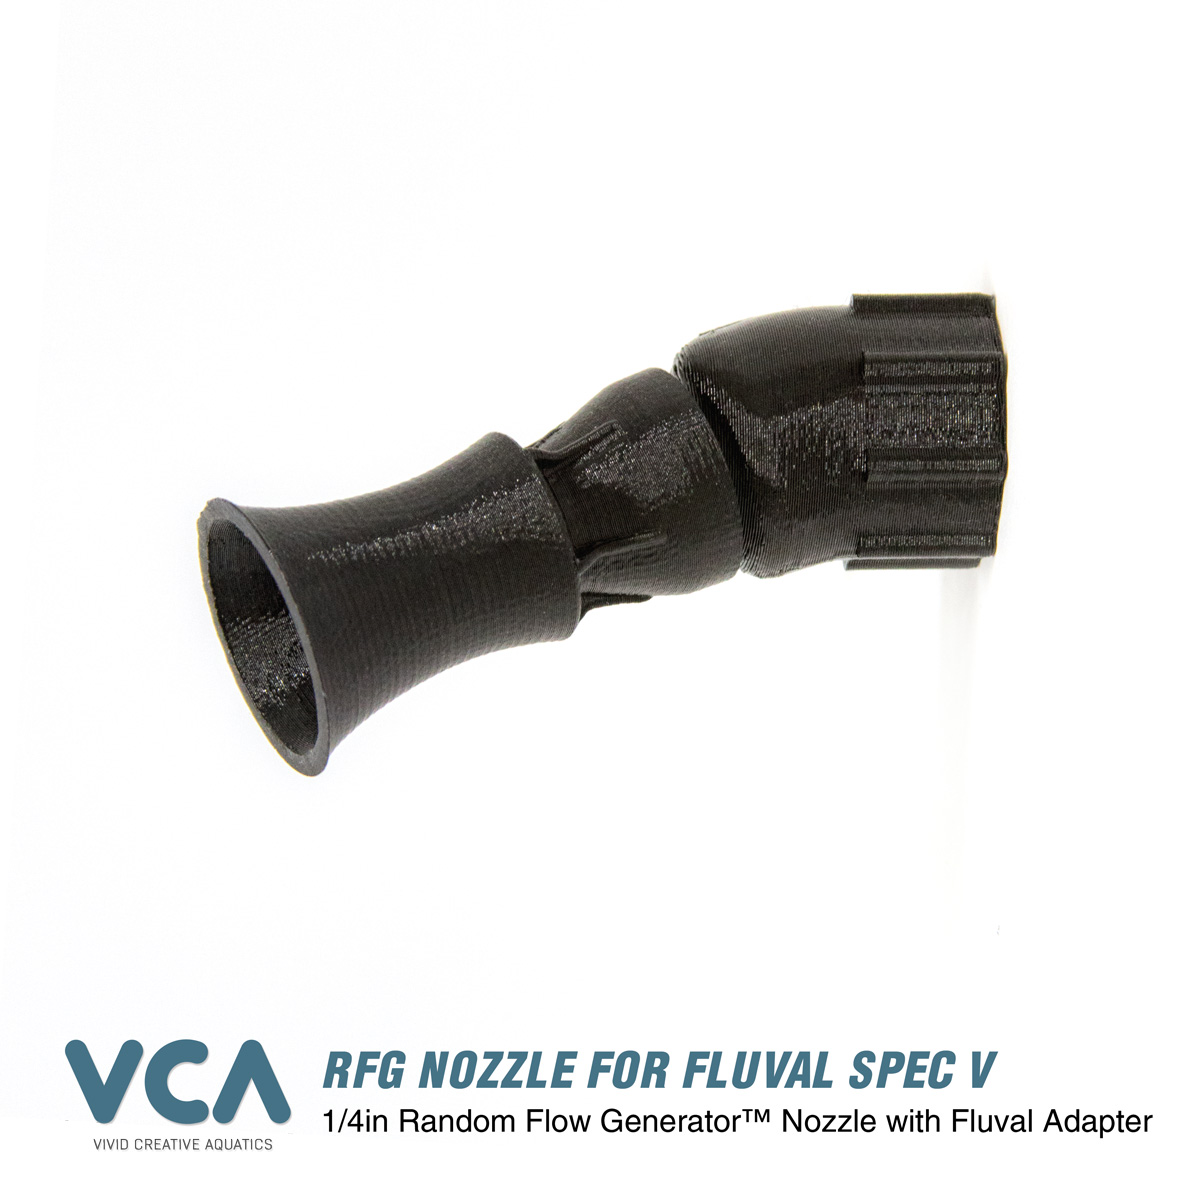 1/4in Random Flow Generator for Fluval Spec V - RFG025-FSV